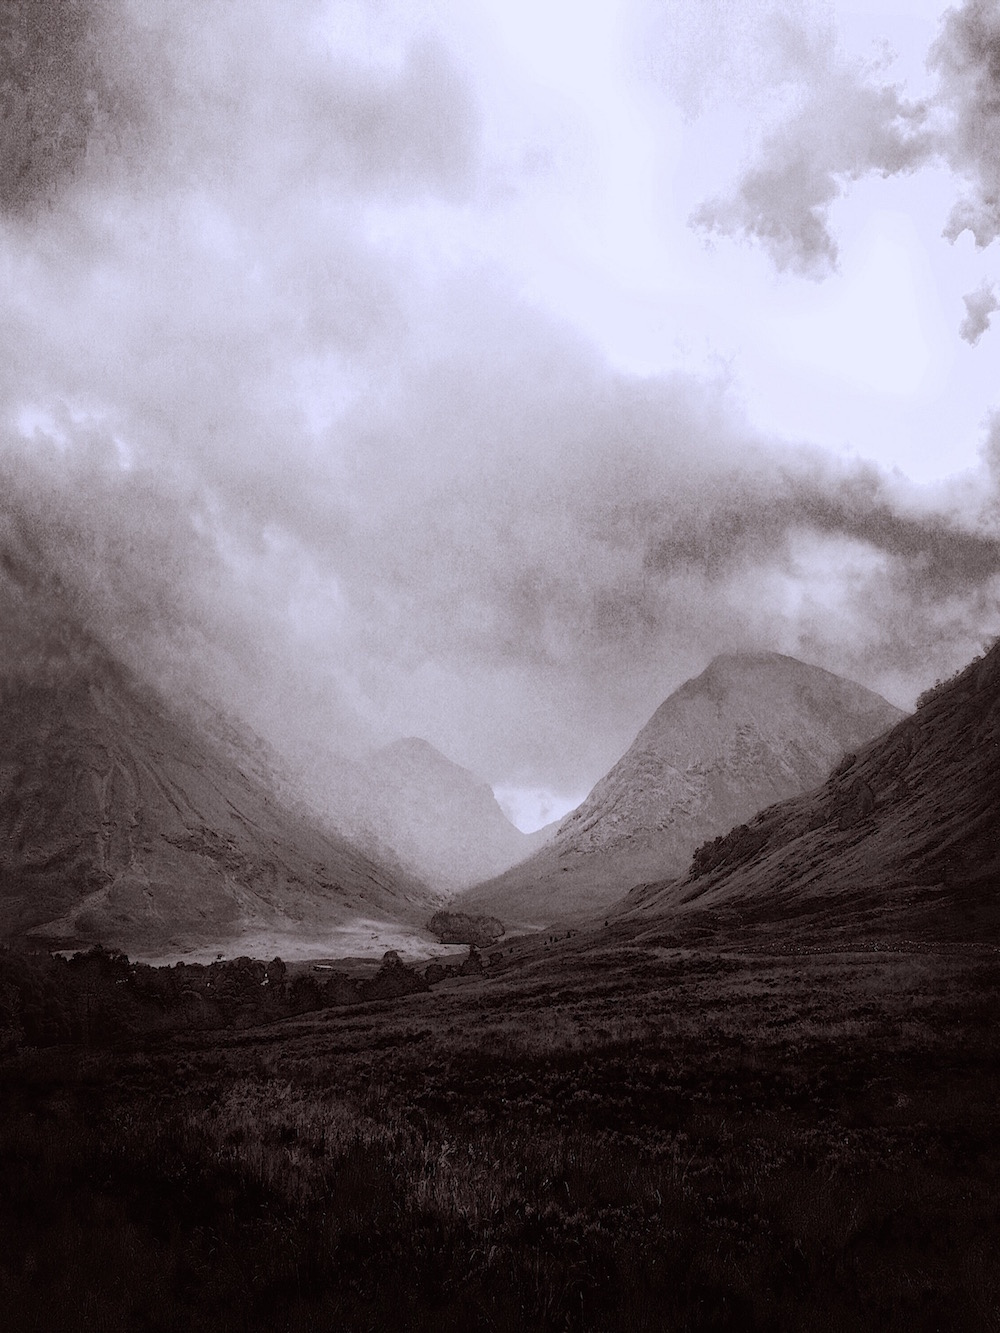 Glen Coe Mist by Kevin Hunter